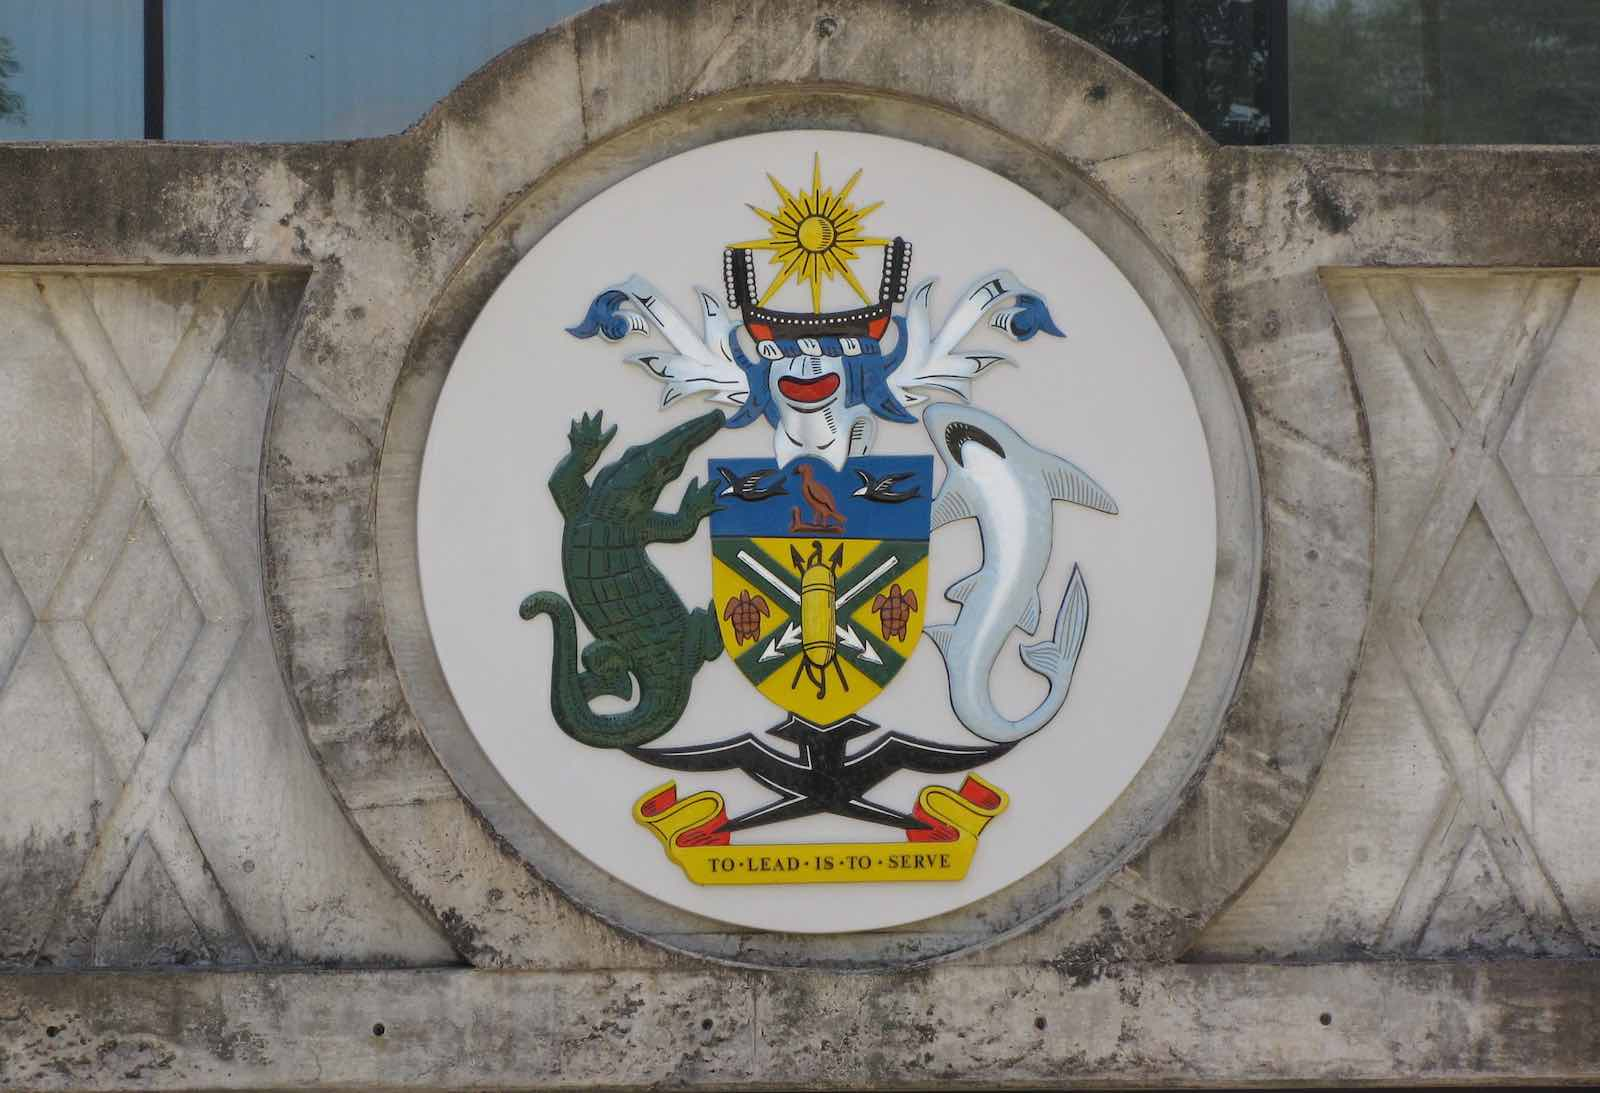 Coat of arms of Solomon Islands, Honiara (Photo: Christopher John SSF/Flickr)